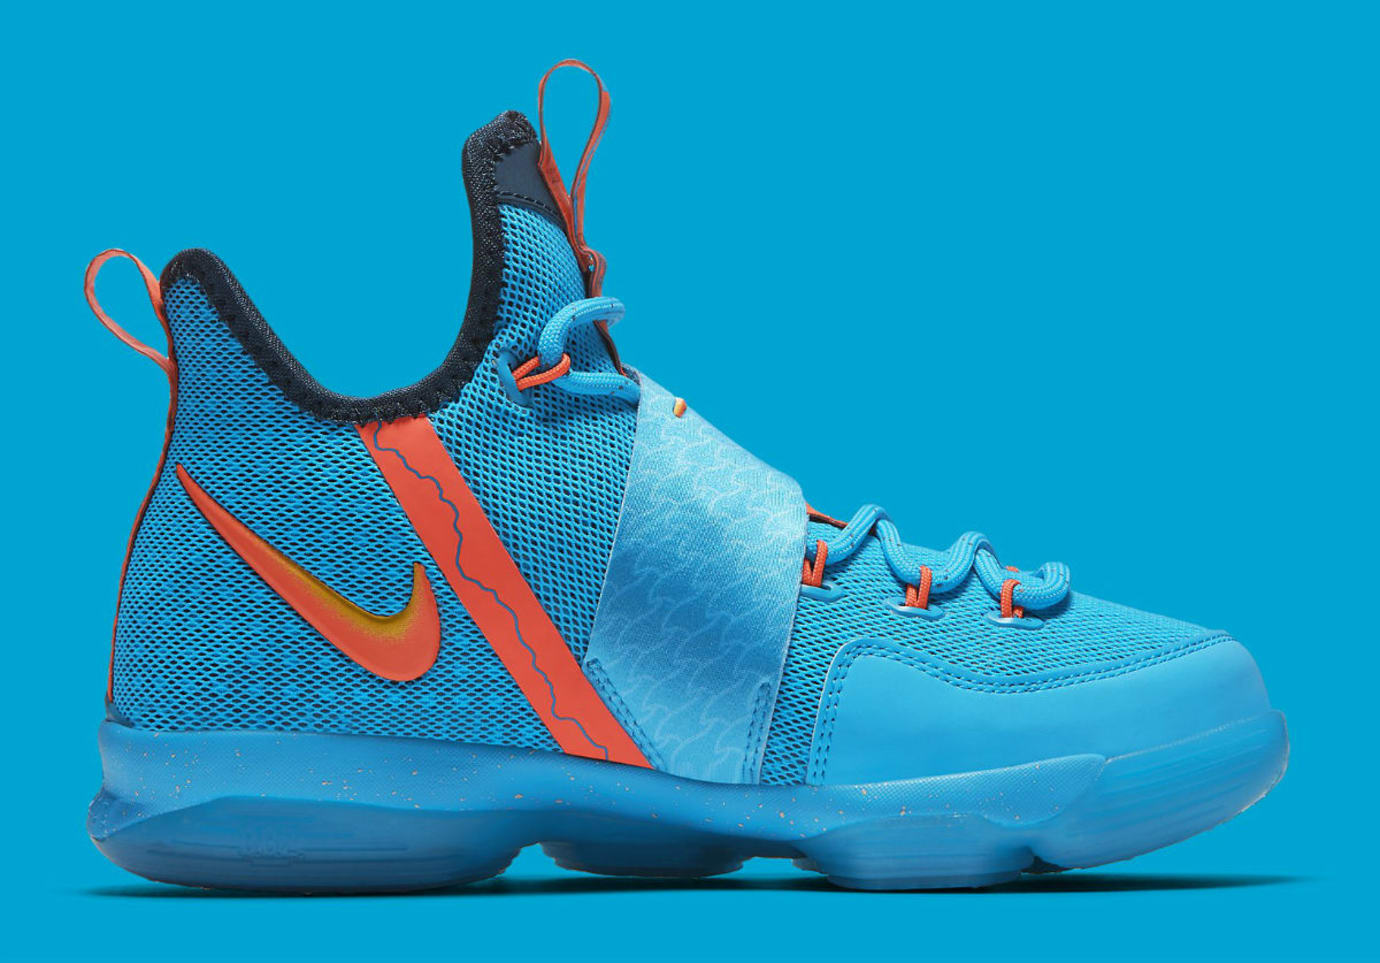 bcc2400221cd Nike LeBron 14 GS Cocoa Beach Release Date Medial 859468-477